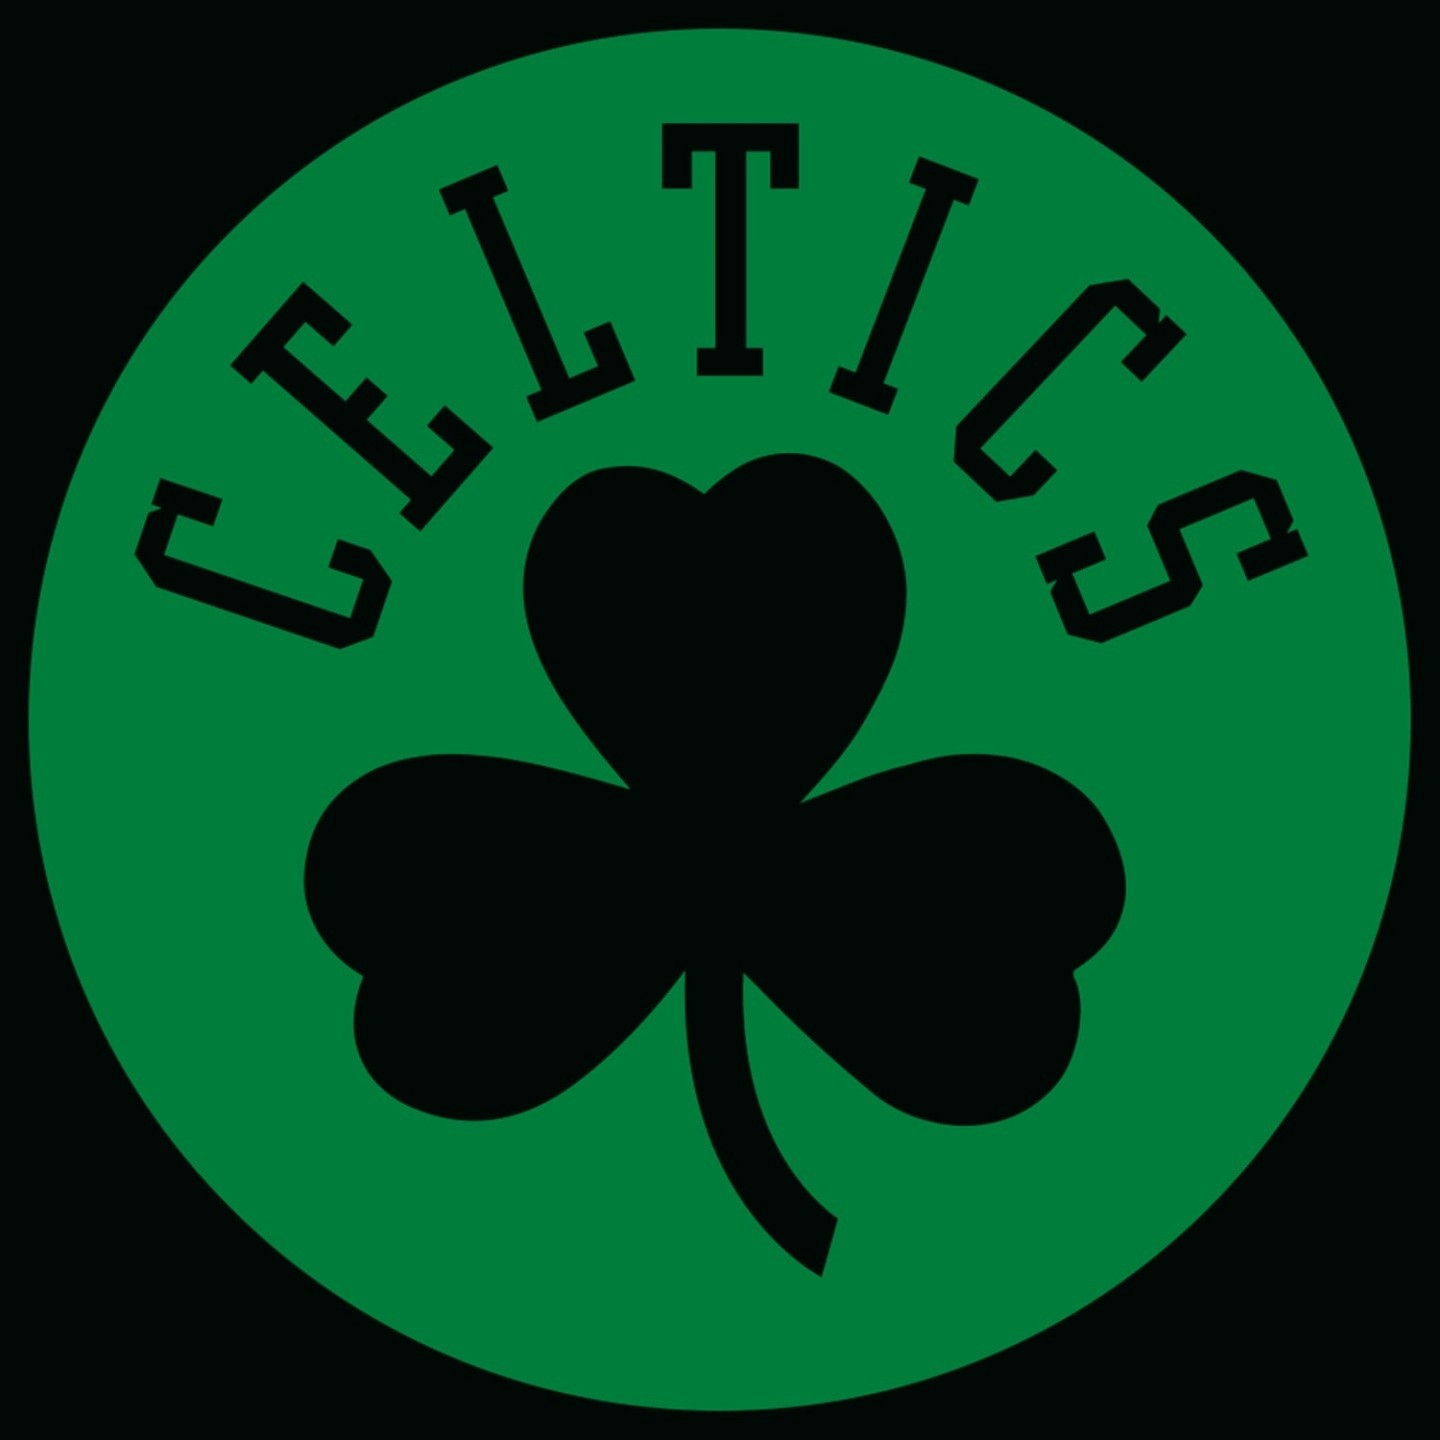 Boston Celtics Logo - Boston celtics Logos